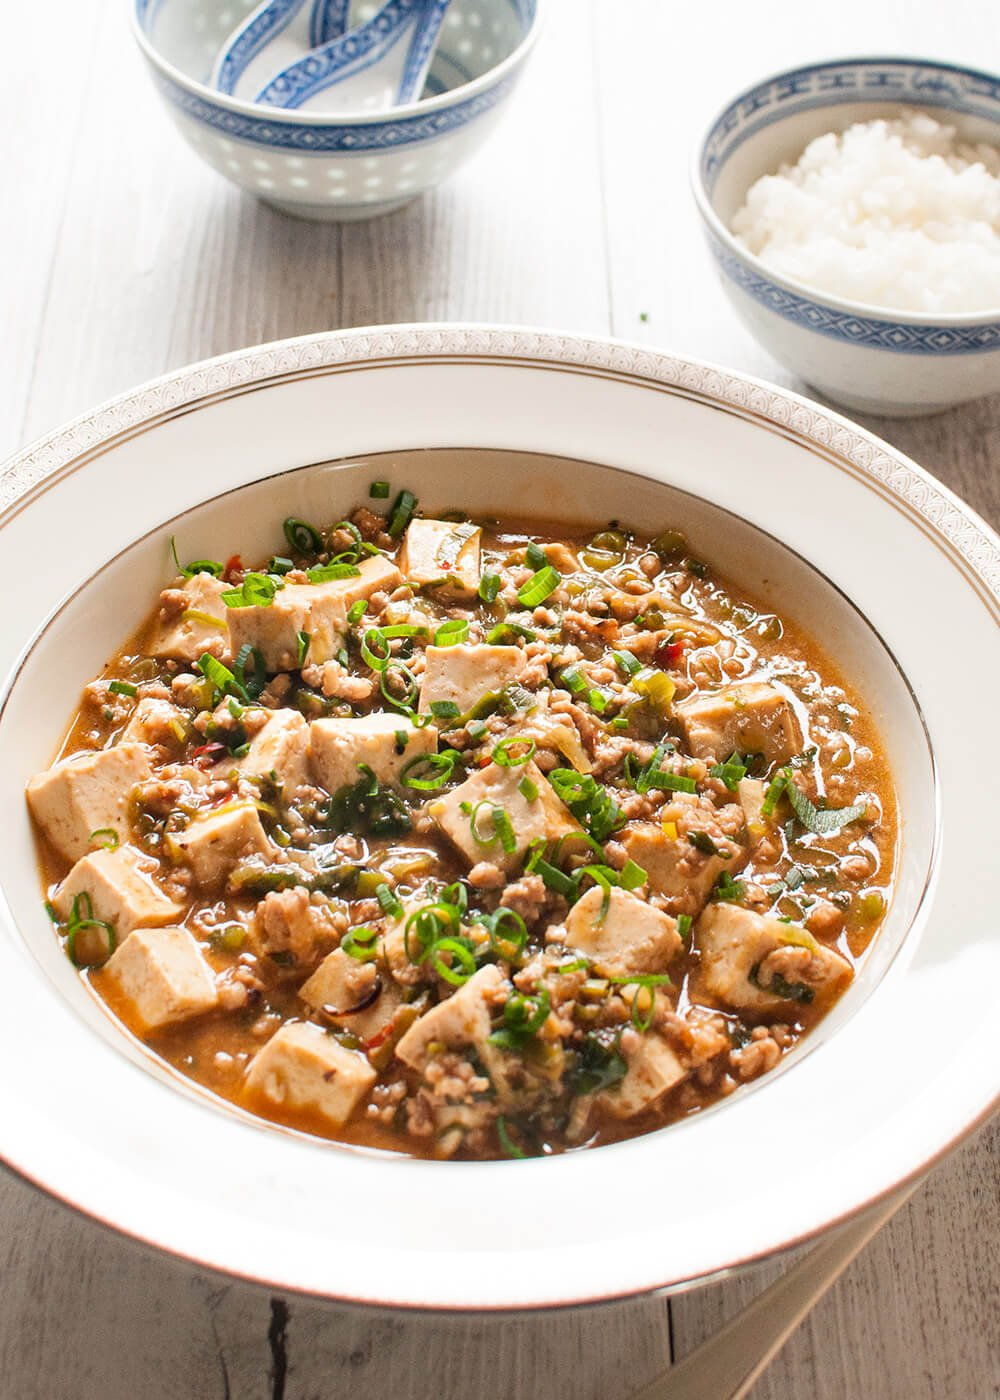 how to make tofu chewy like meat